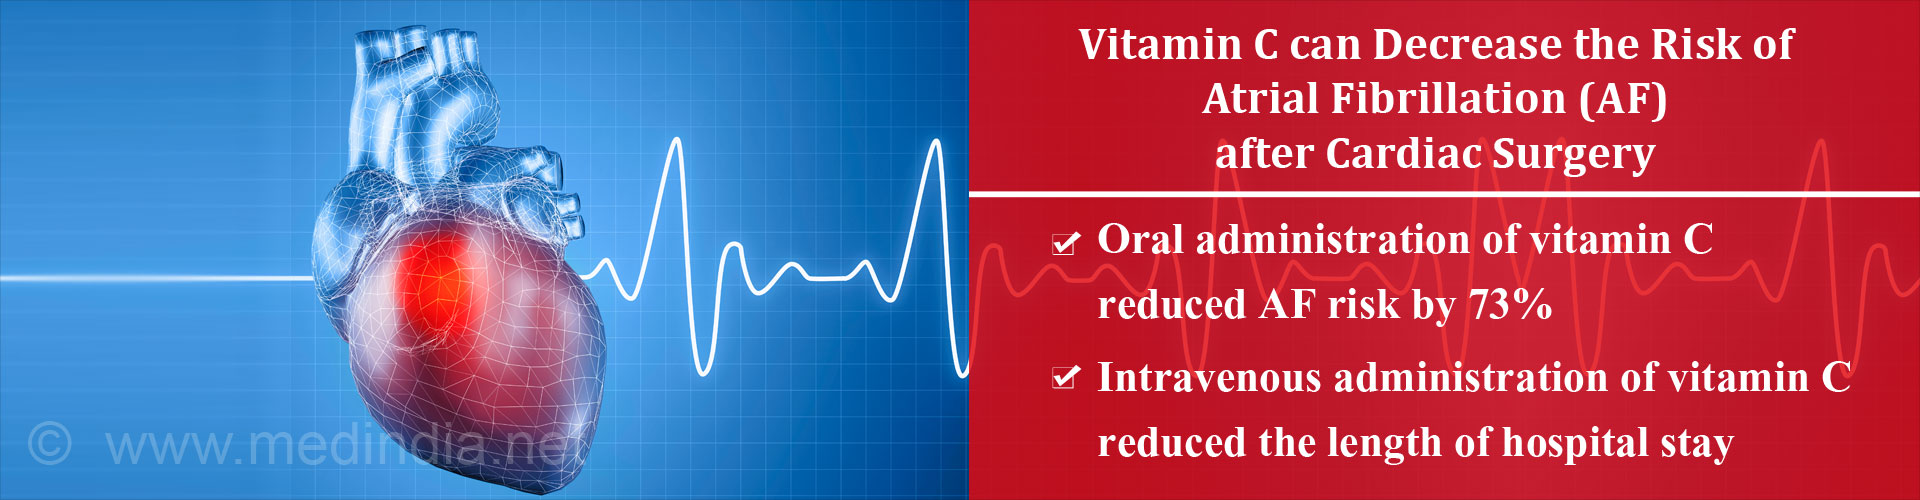 Vitamin C may Help Lower the Risk of Post-Operative Atrial Fibrillation